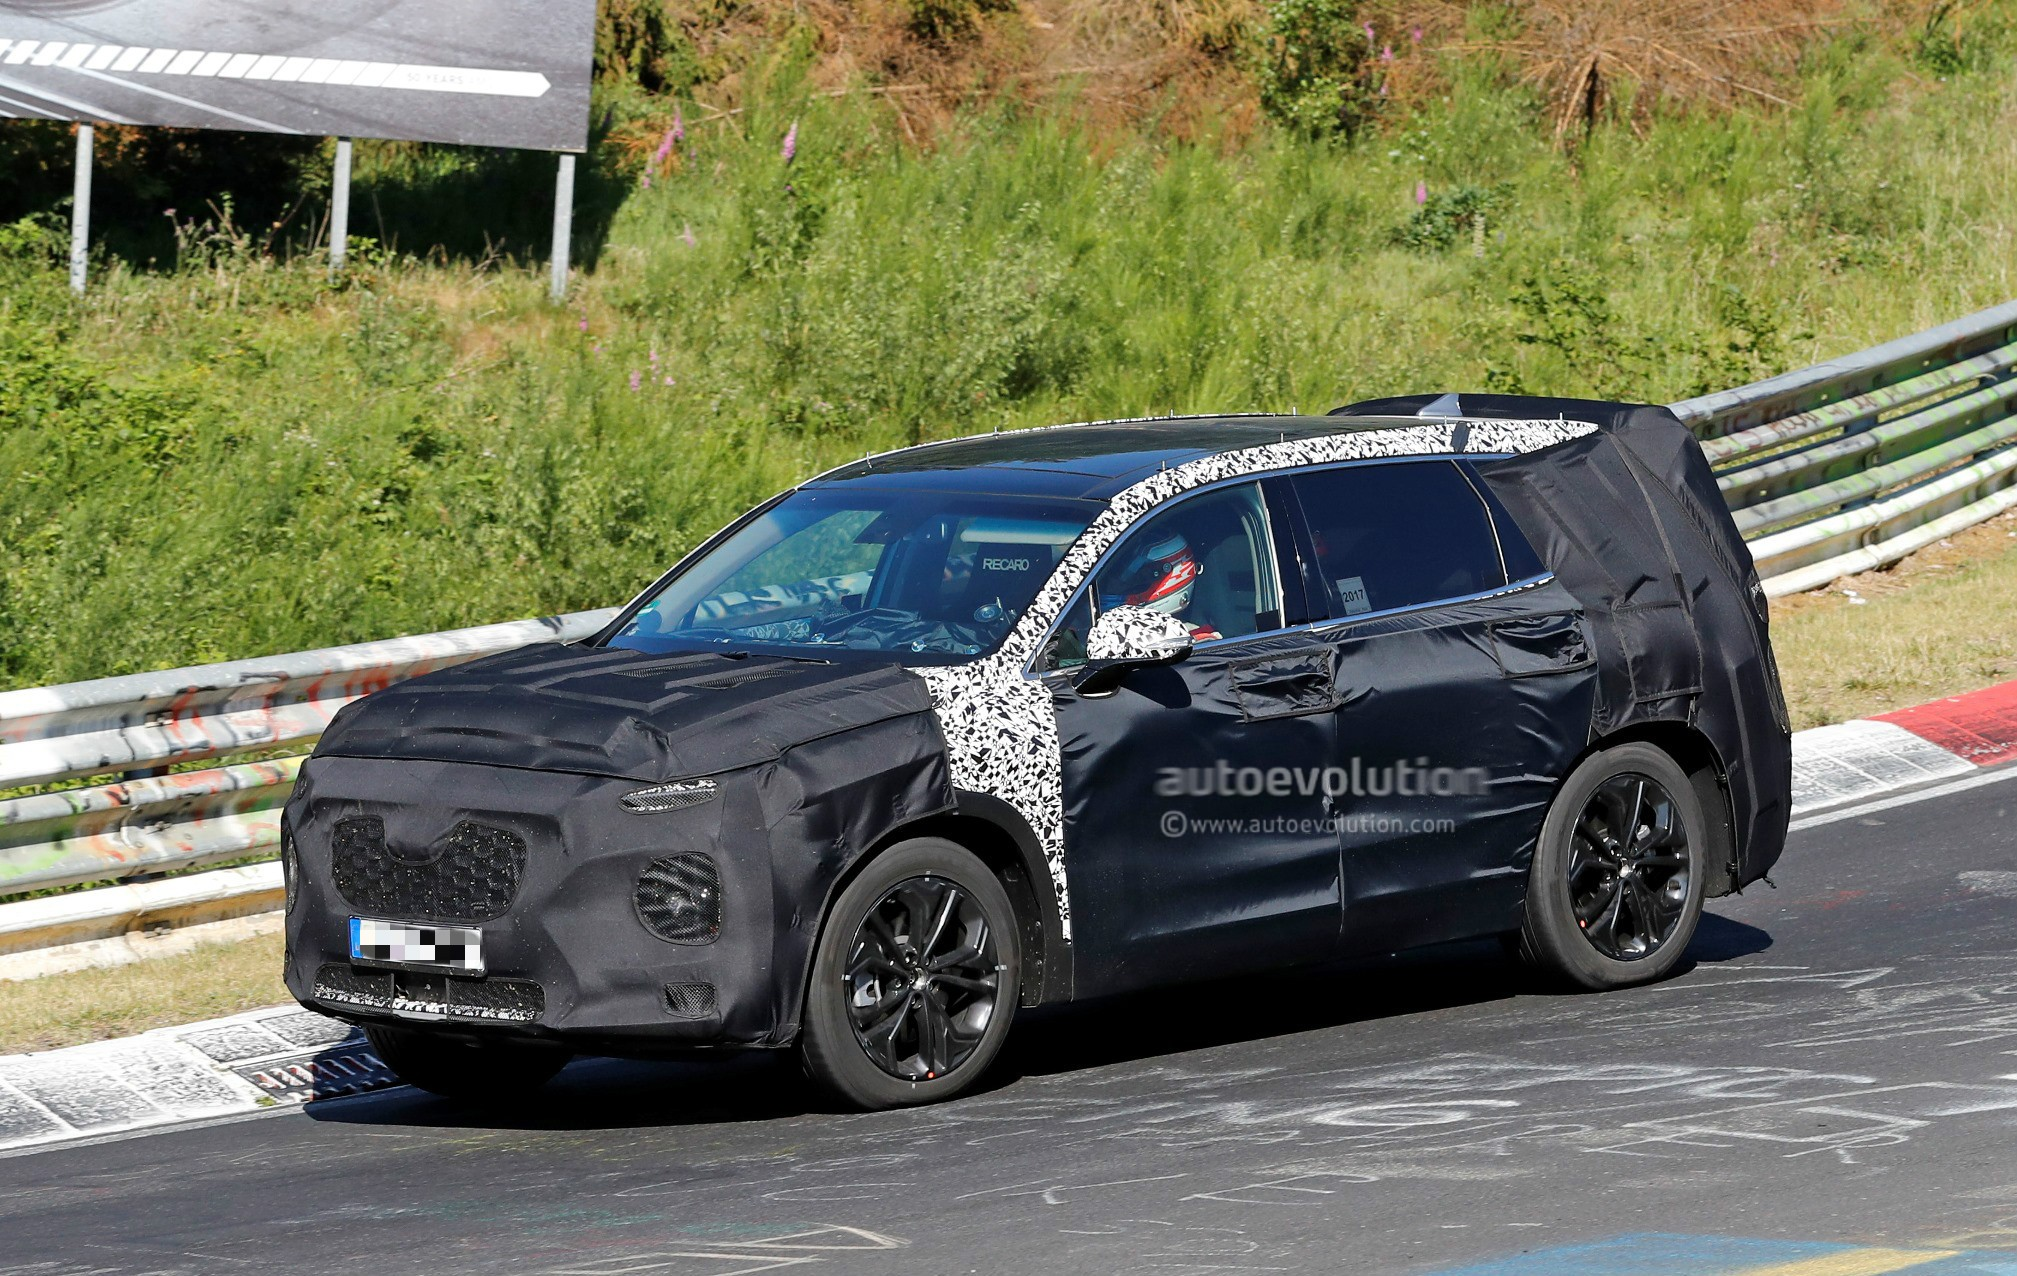 2019 hyundai santa fe takes on the karussell in newest spy video autoevolution. Black Bedroom Furniture Sets. Home Design Ideas